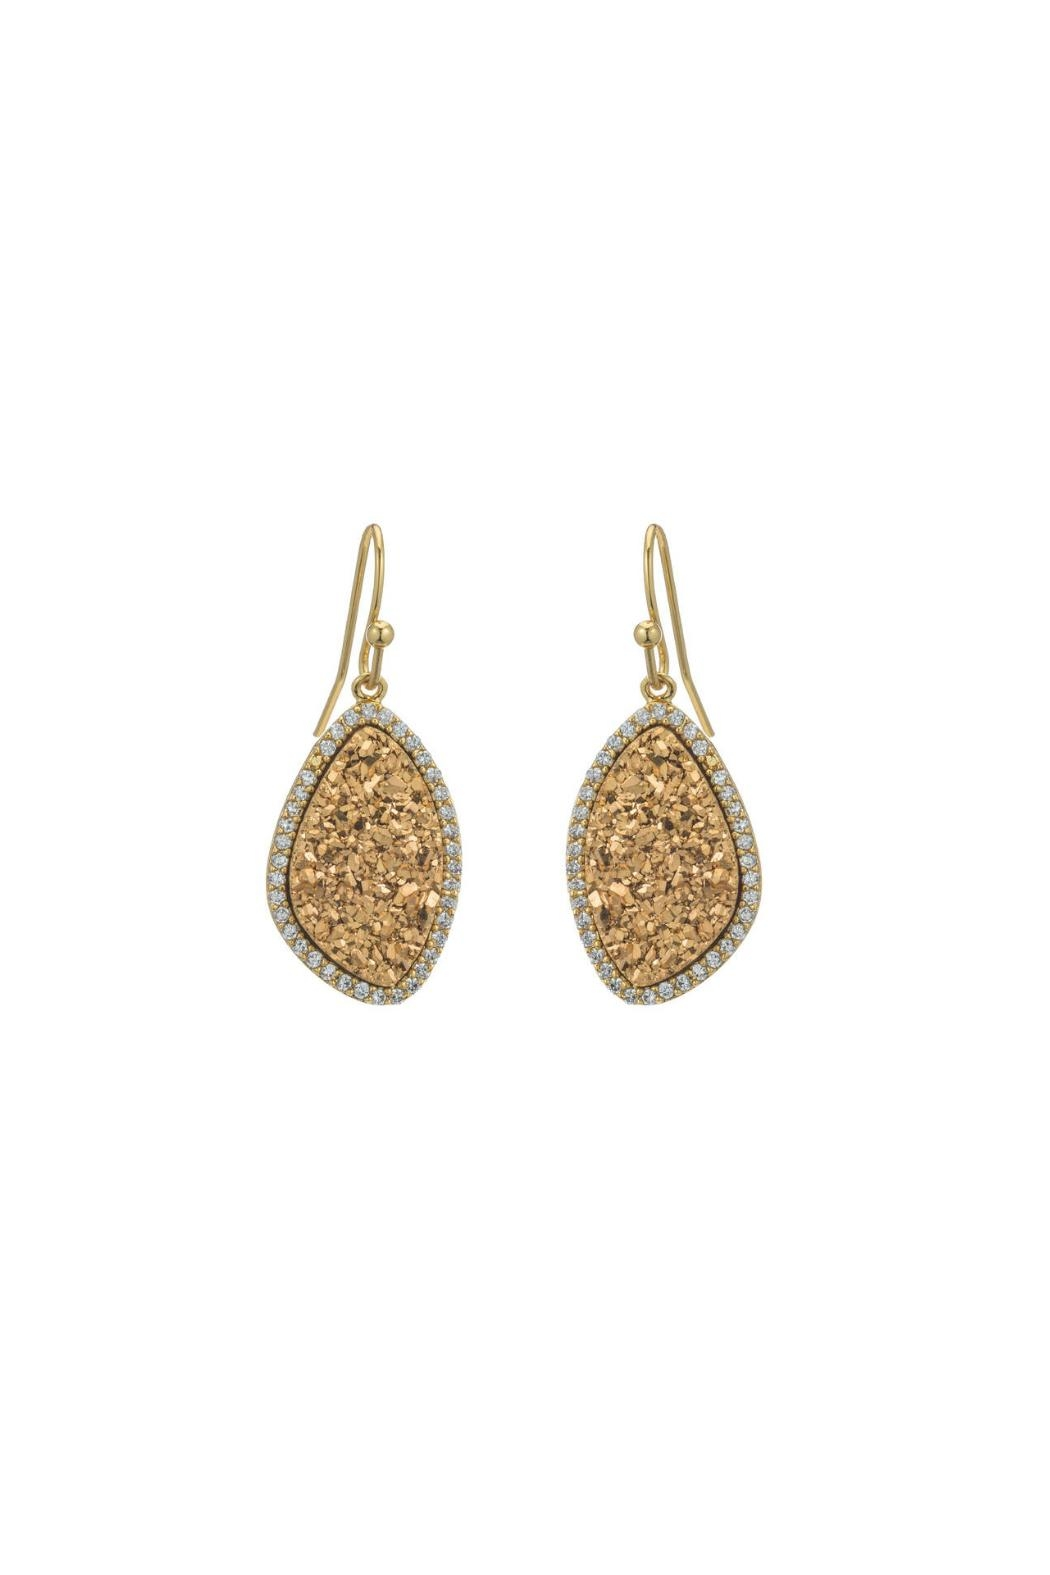 Gemma Collection Golden Druzy Earrings - Main Image